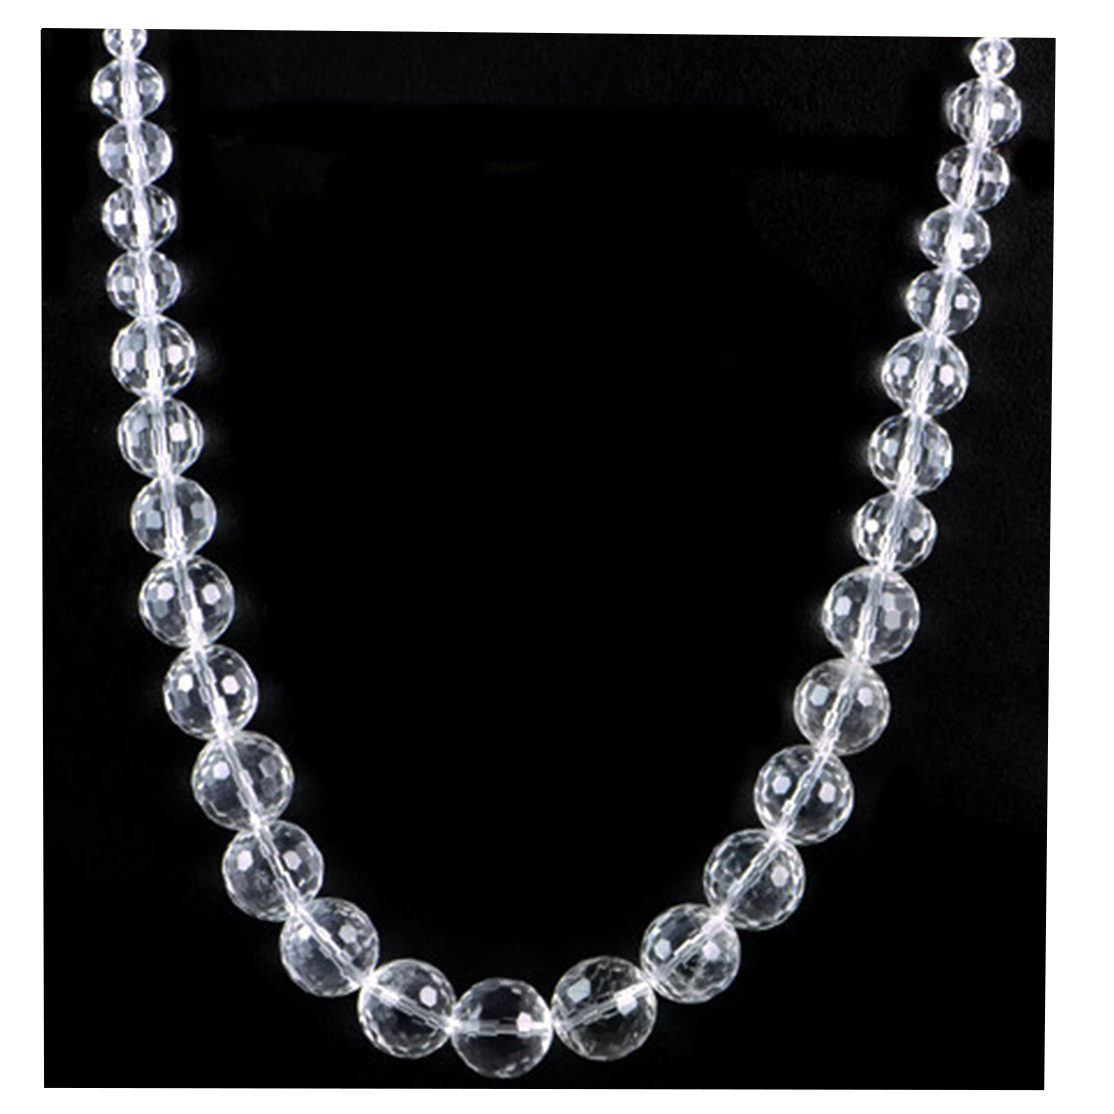 AqBeadsUk Classic Semi-Precious 14-6mm Gemstone Clear Crystal Quartz Faceted Beads 19.2 inch Luxury Handmade Women's Necklace